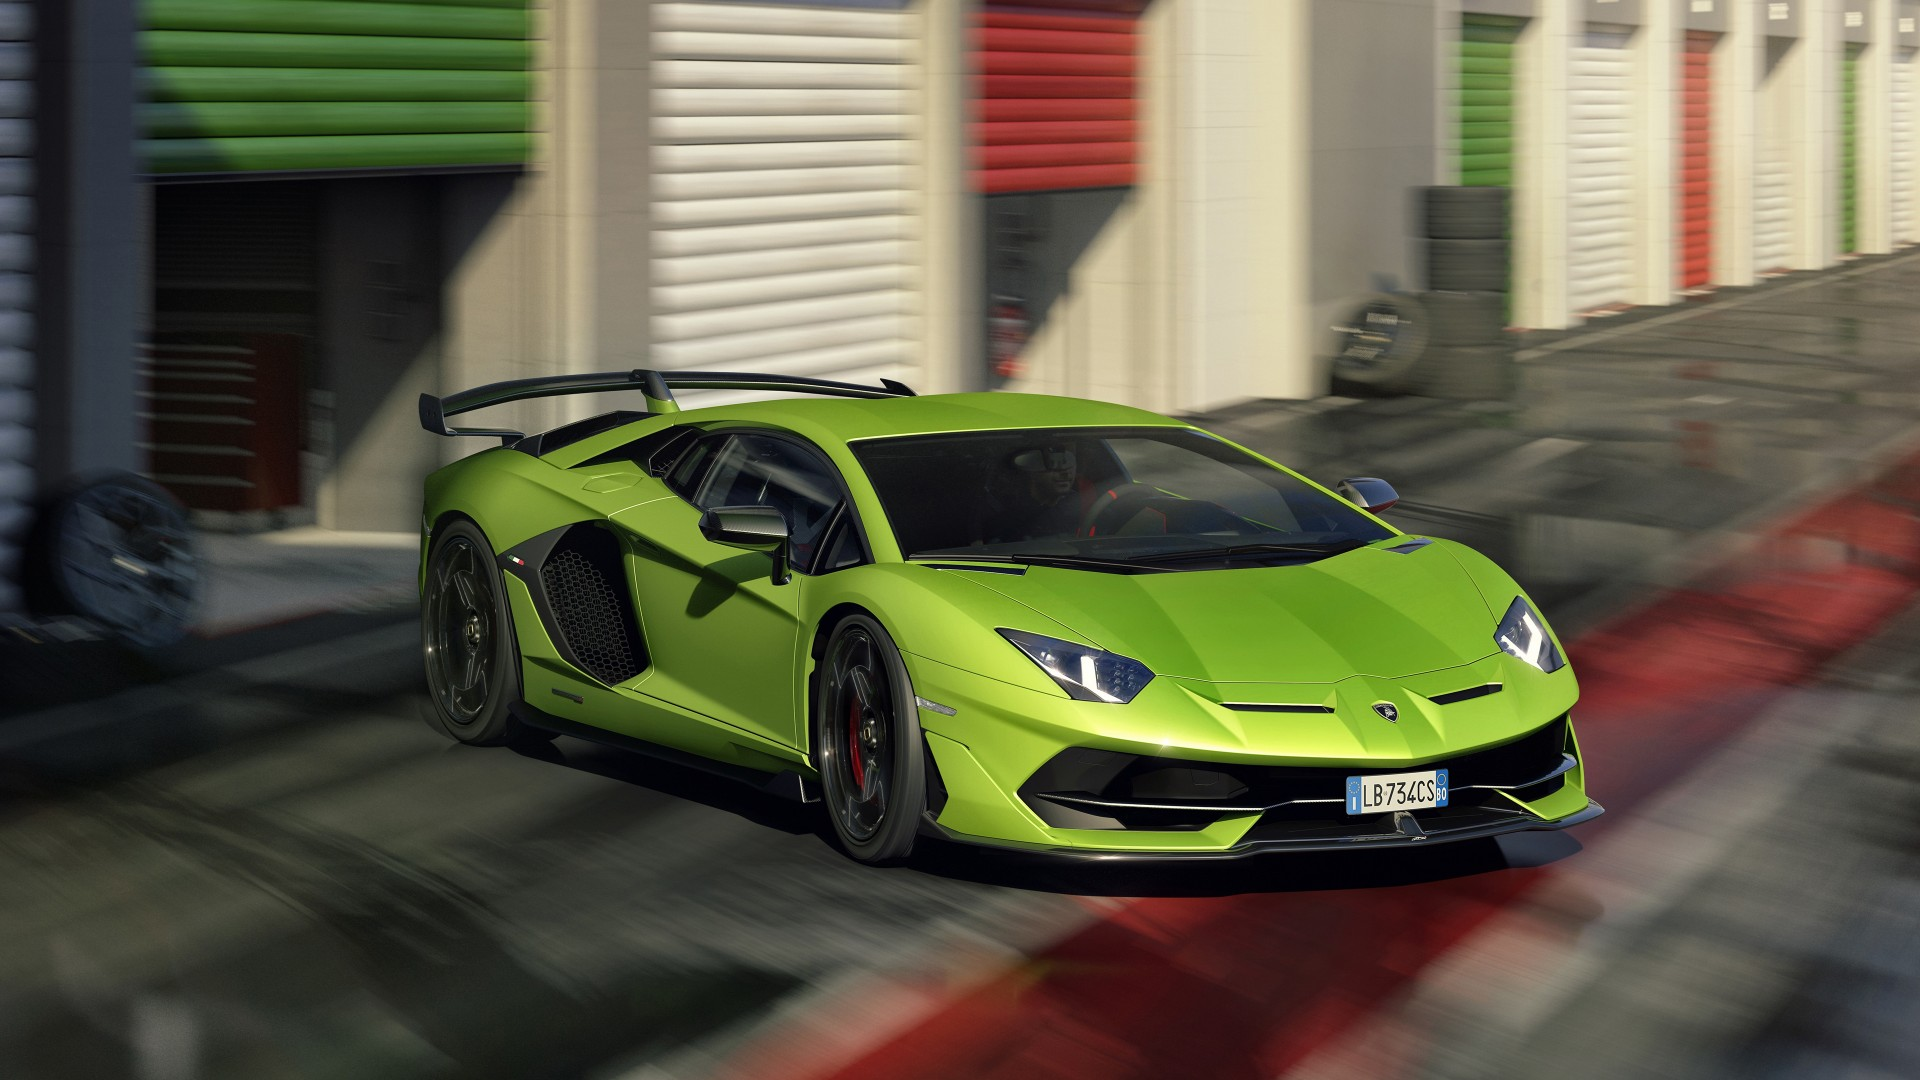 Car Wallpapers 4k Bentely 2019 Lamborghini Aventador Svj 4k 5 Wallpaper Hd Car